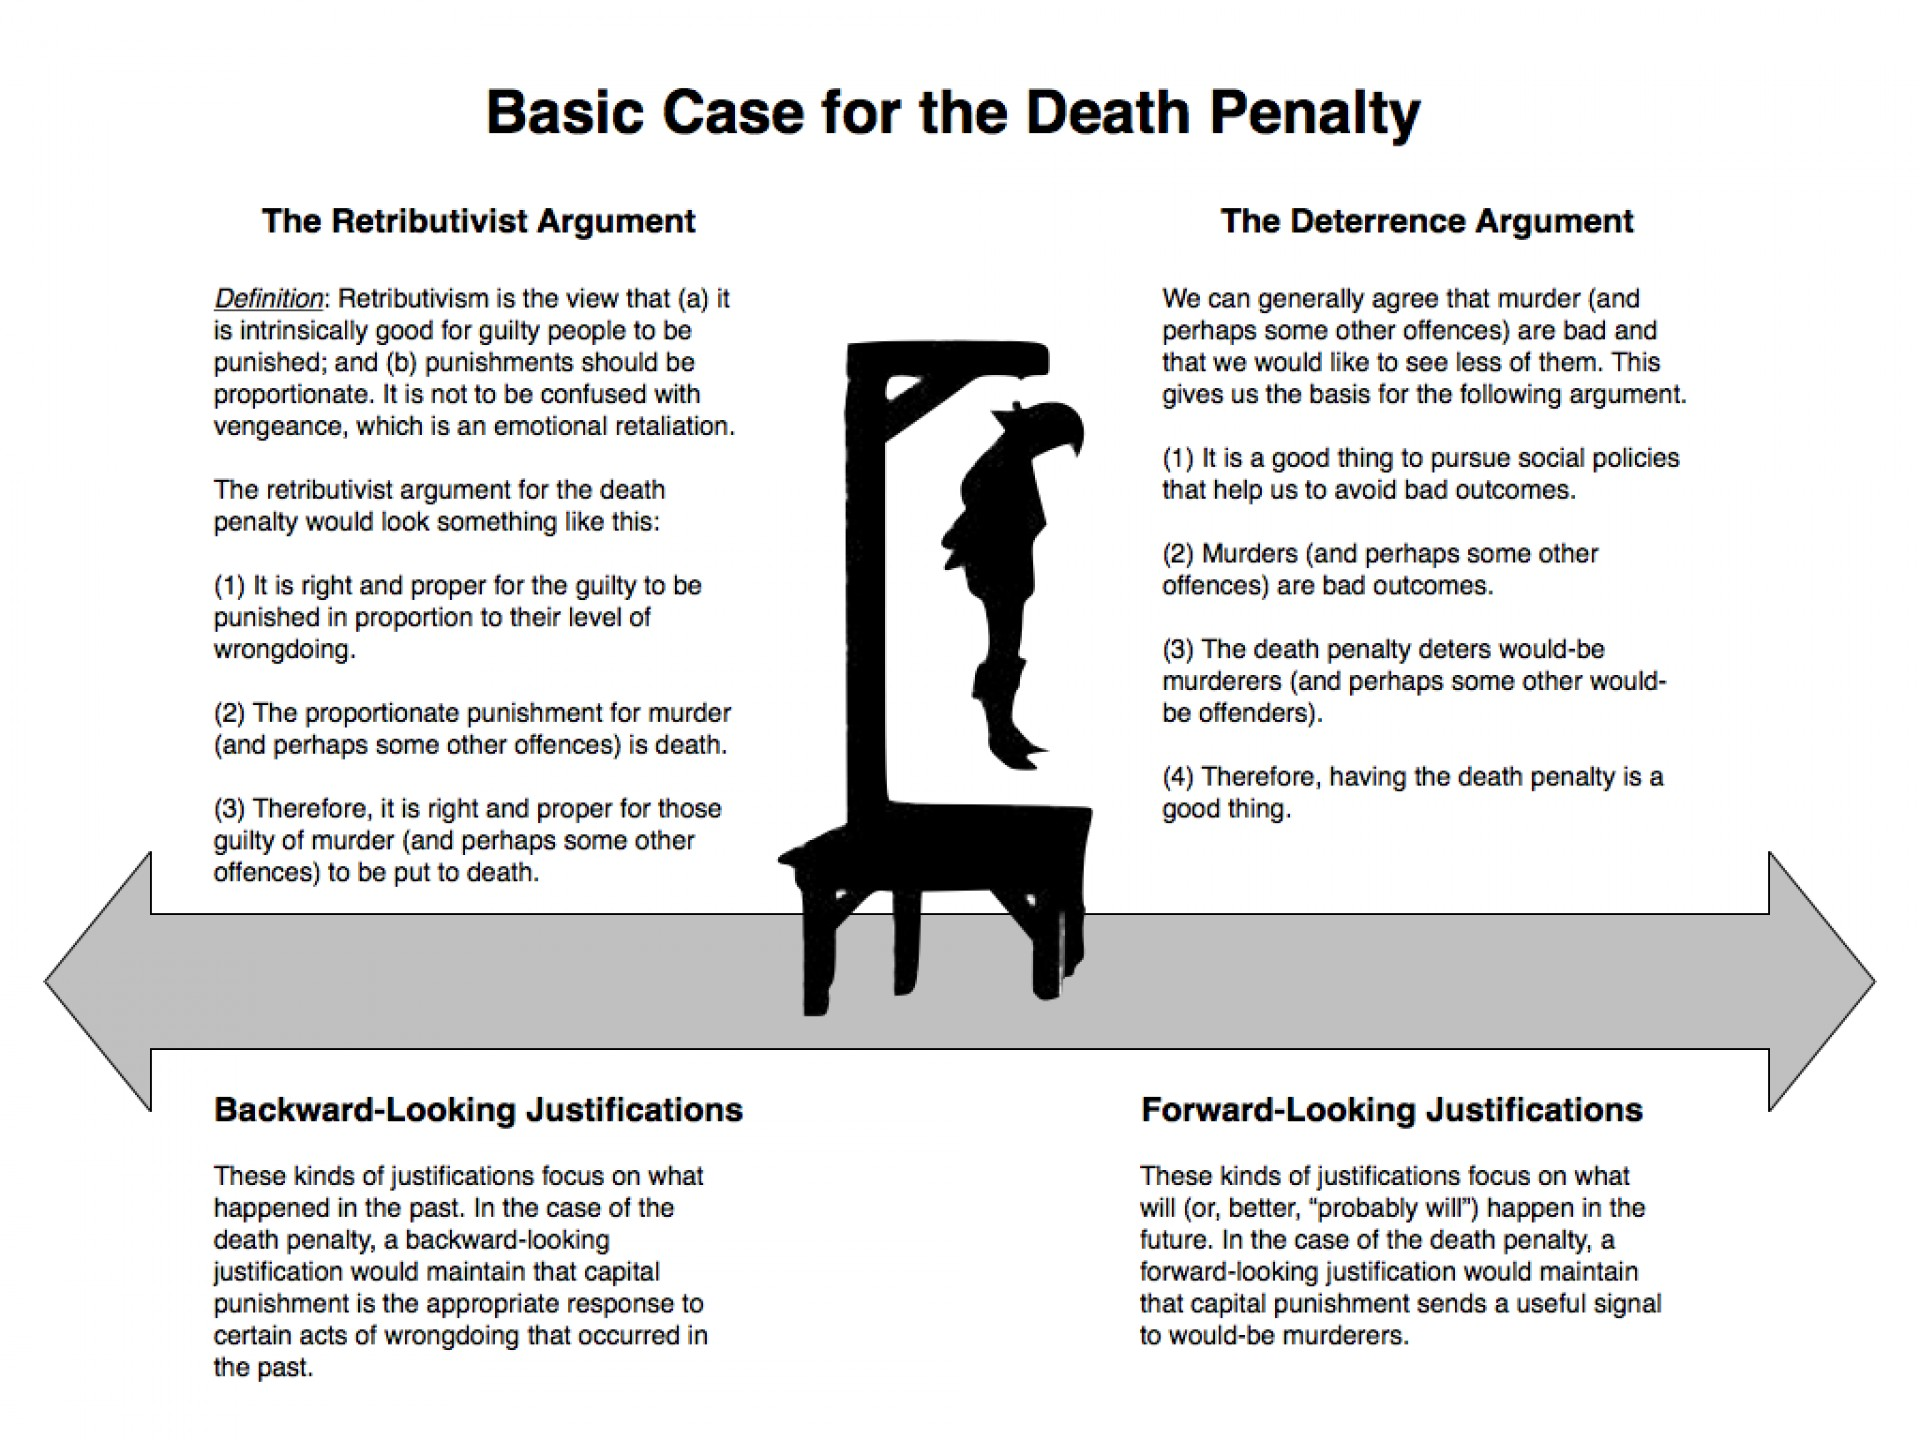 016 Deathpenaltydebate Essay Example Death Awful Penalty Pros And Cons Argumentative Conclusion 1920